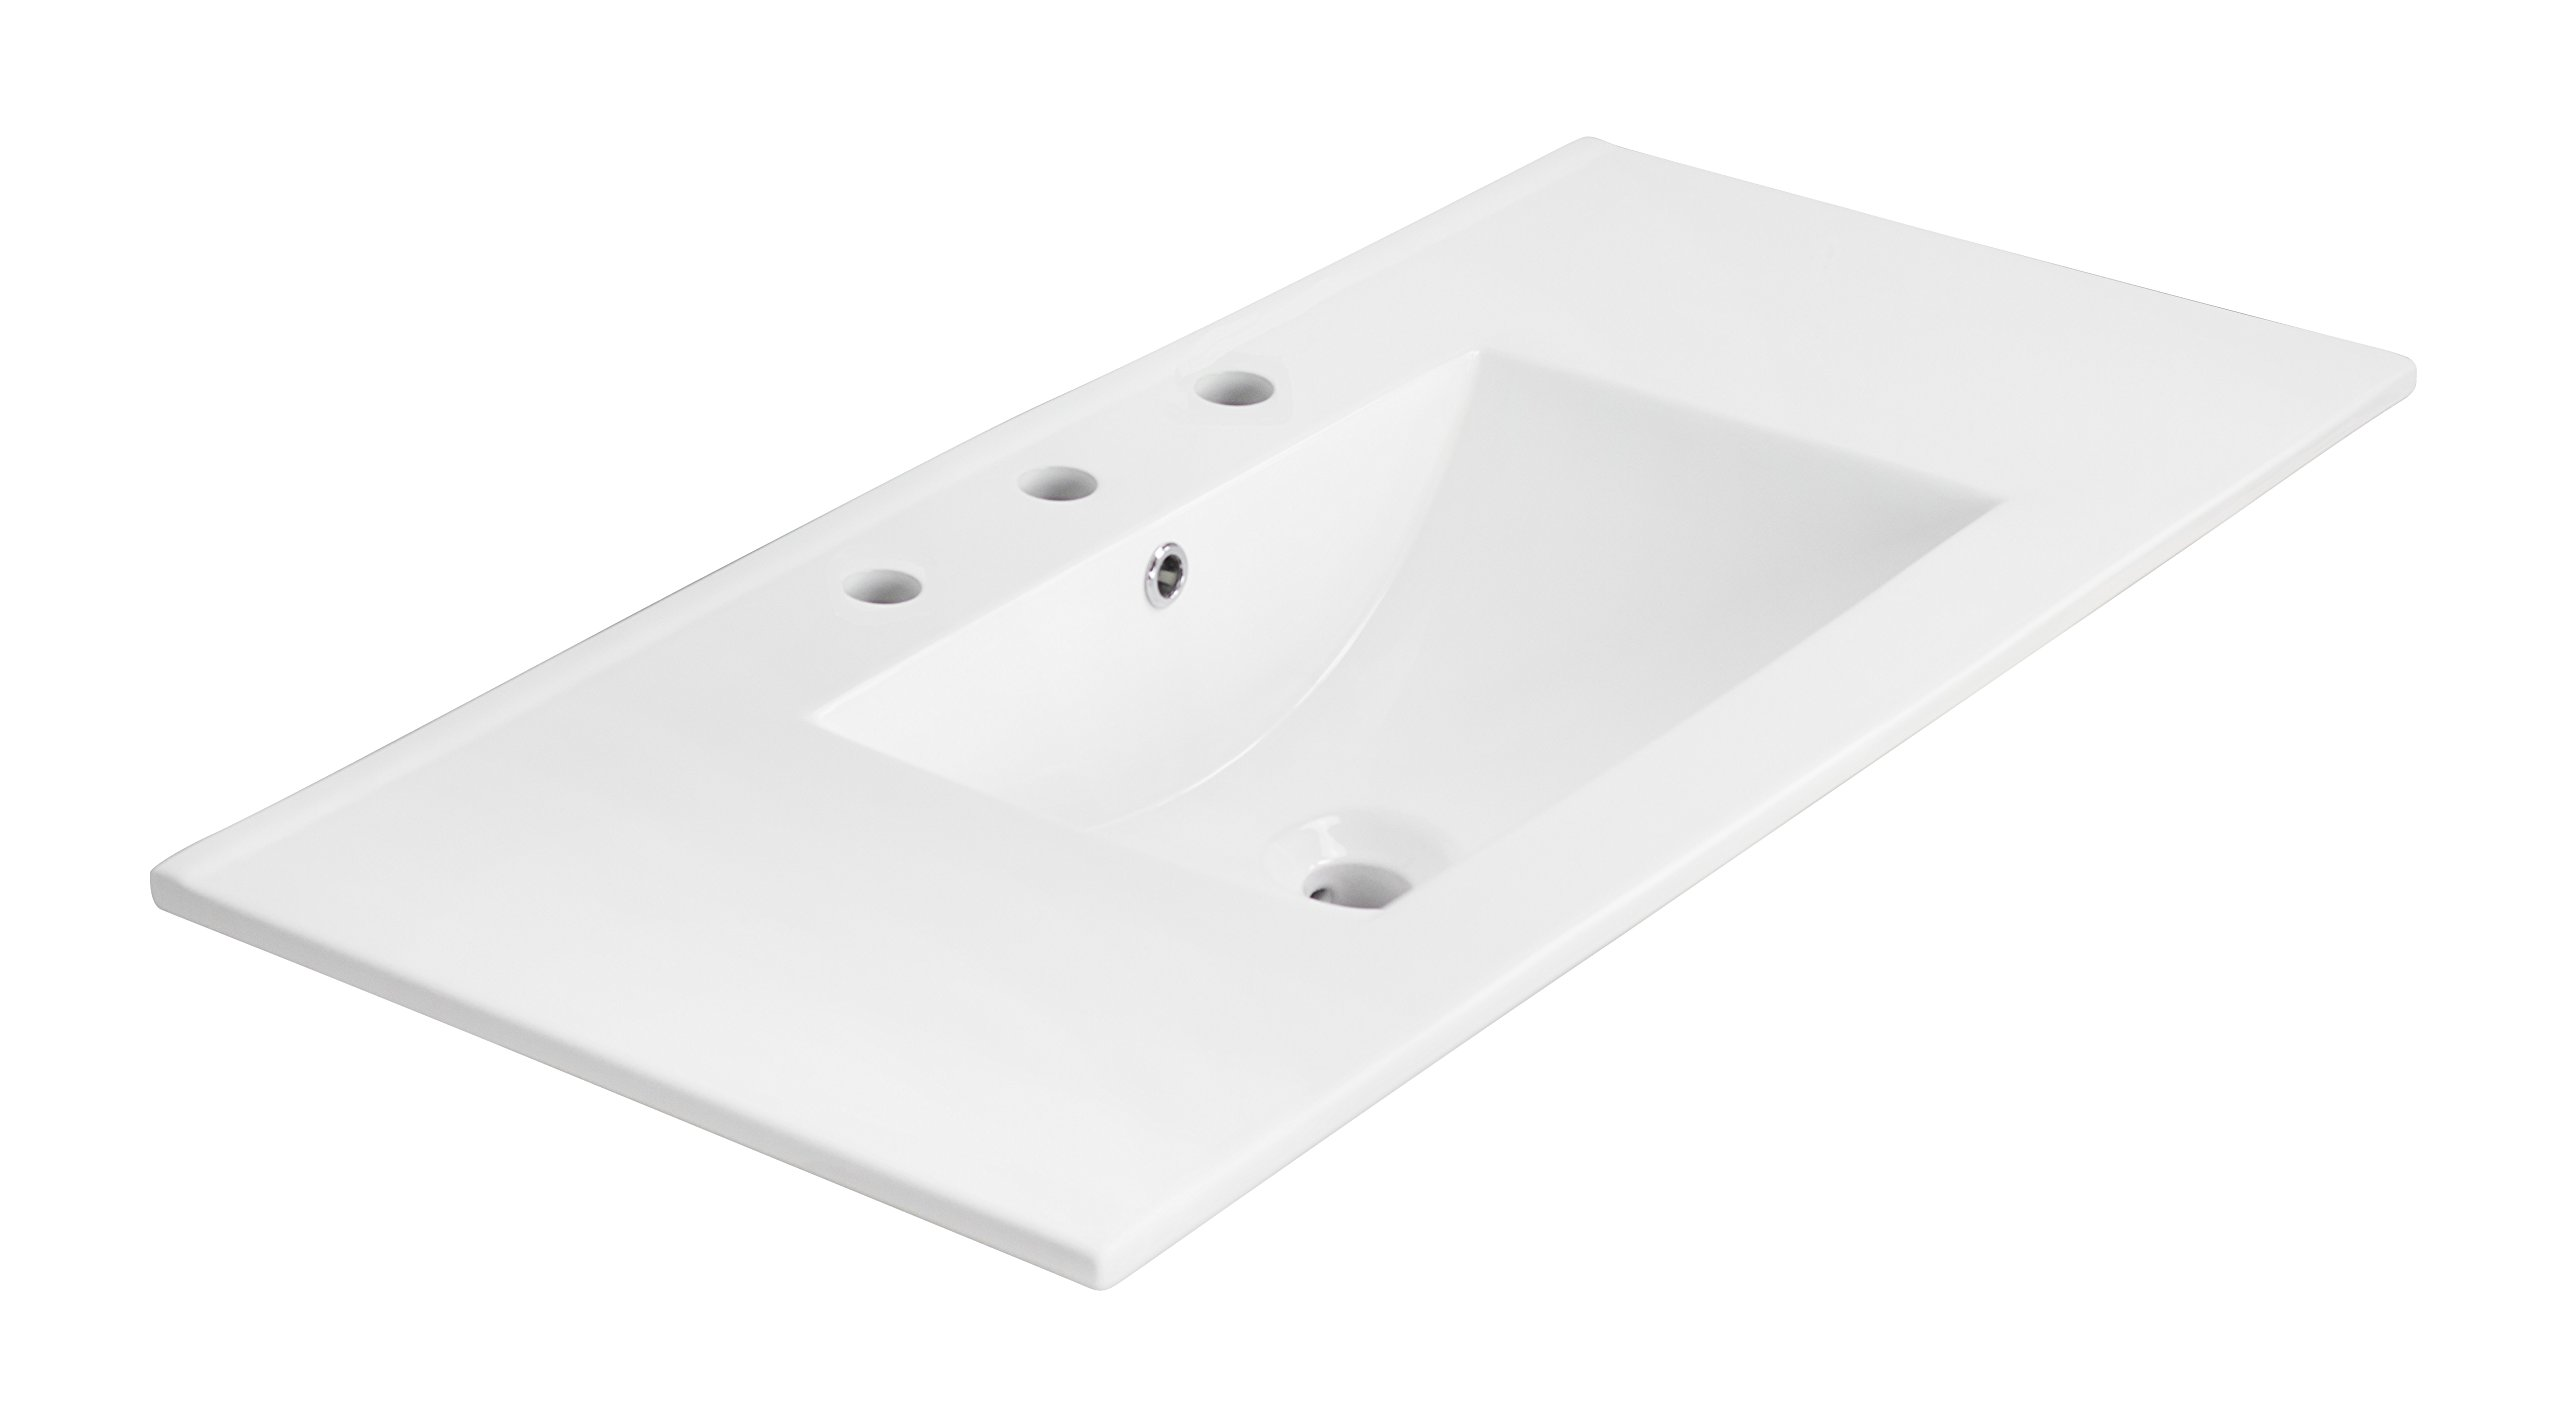 American Imaginations 661   36-Inch  X 18-Inch  White Ceramic Top with 8-Inch  Centers by American Imaginations